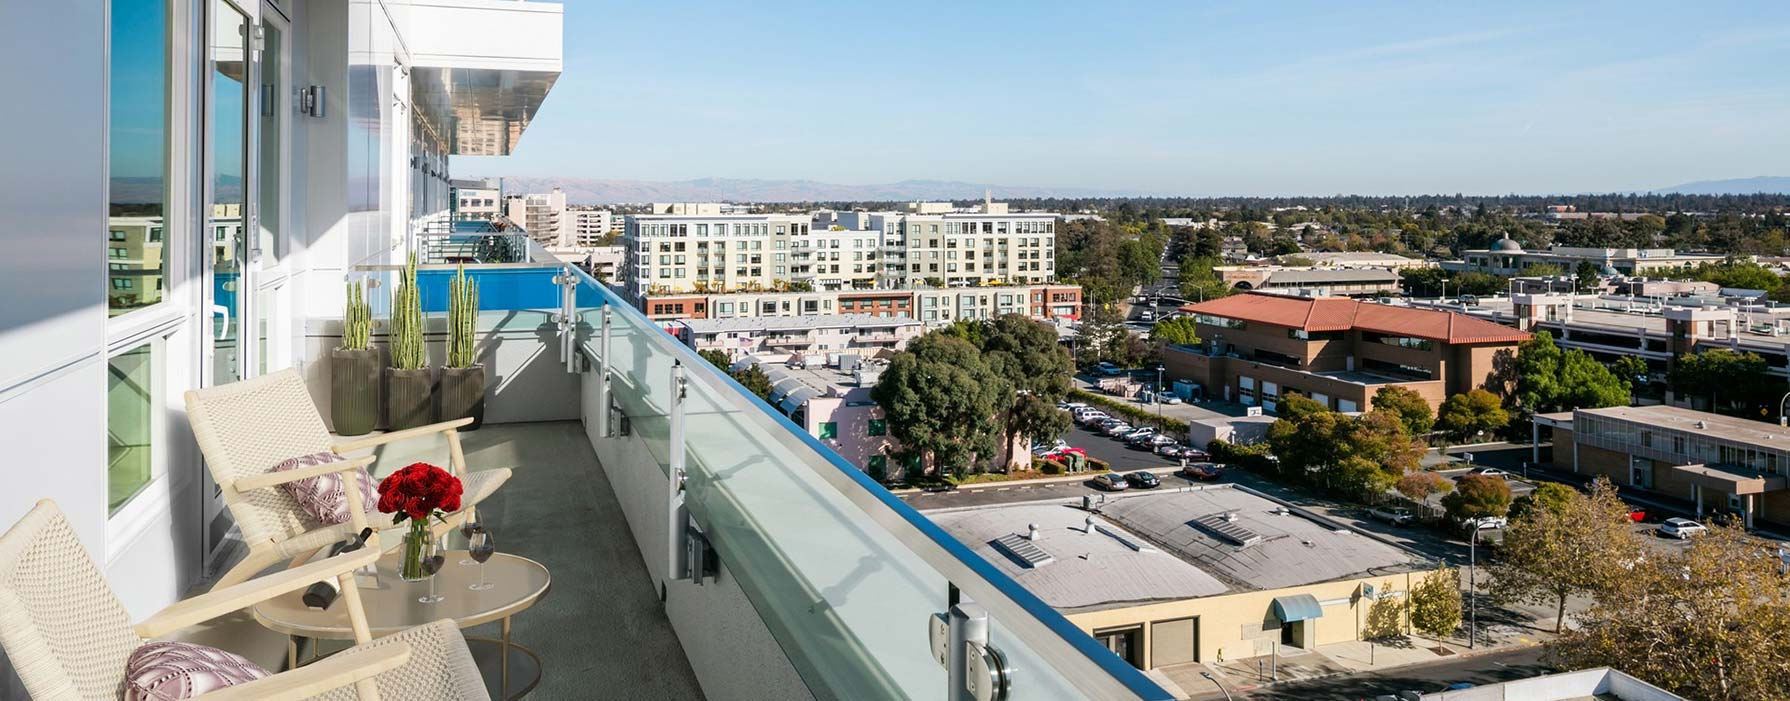 Indigo Apartments - Redwood City, CA - Balcony View